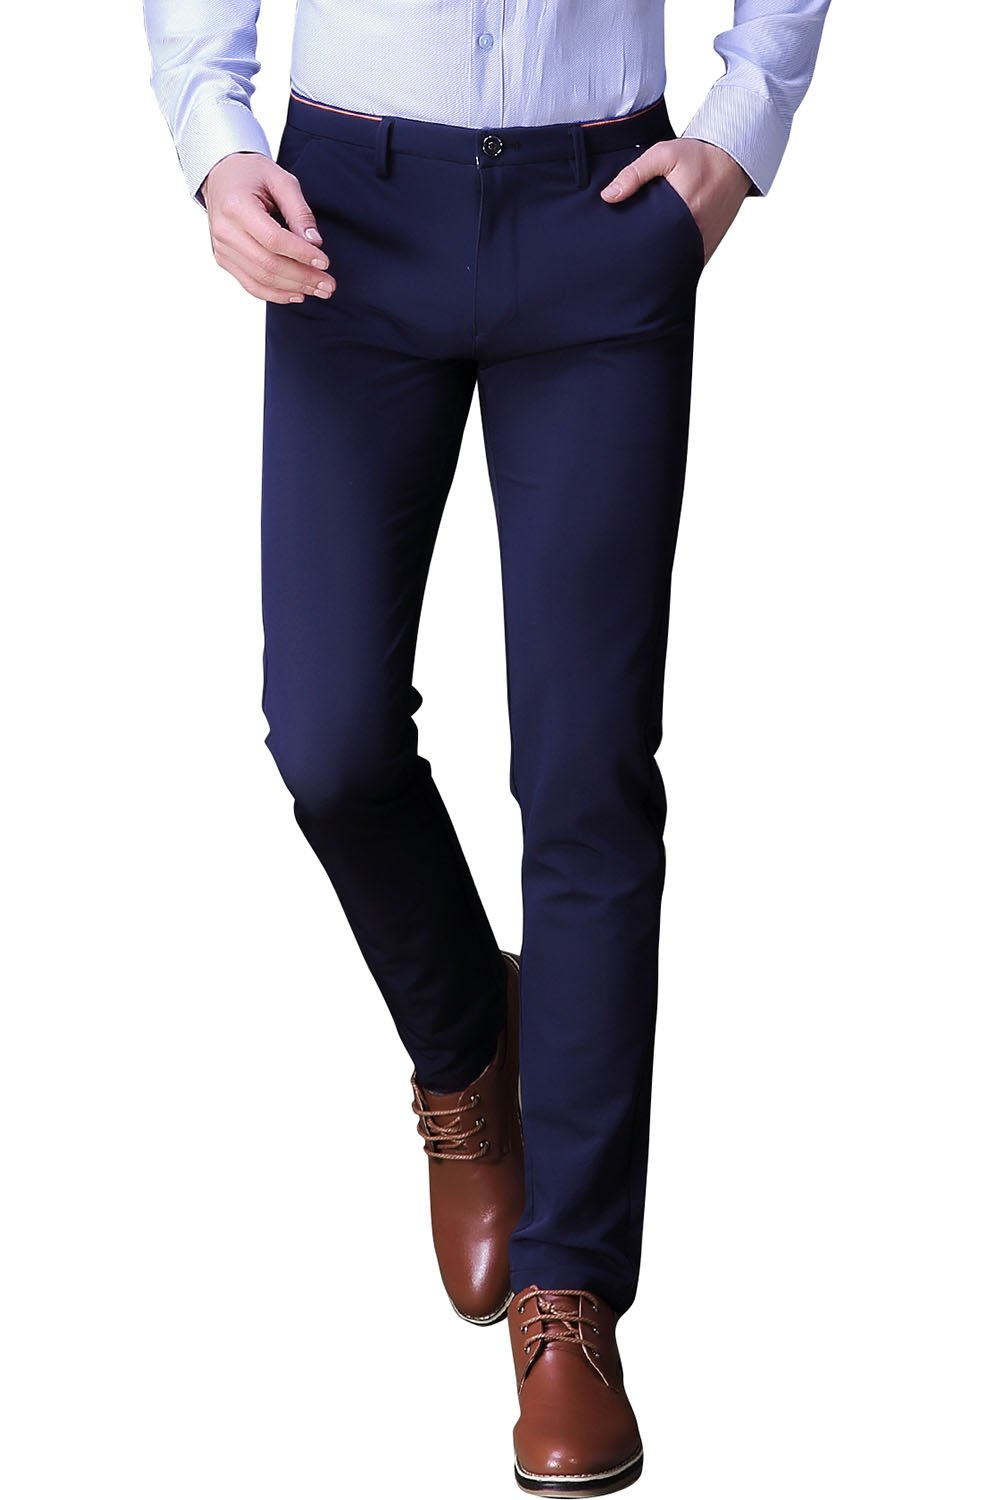 INFLATION Mens Wrinkle-Free Casual Pants Slim-Tapered Stretch Dress Pants, Flat Front Suit Pants